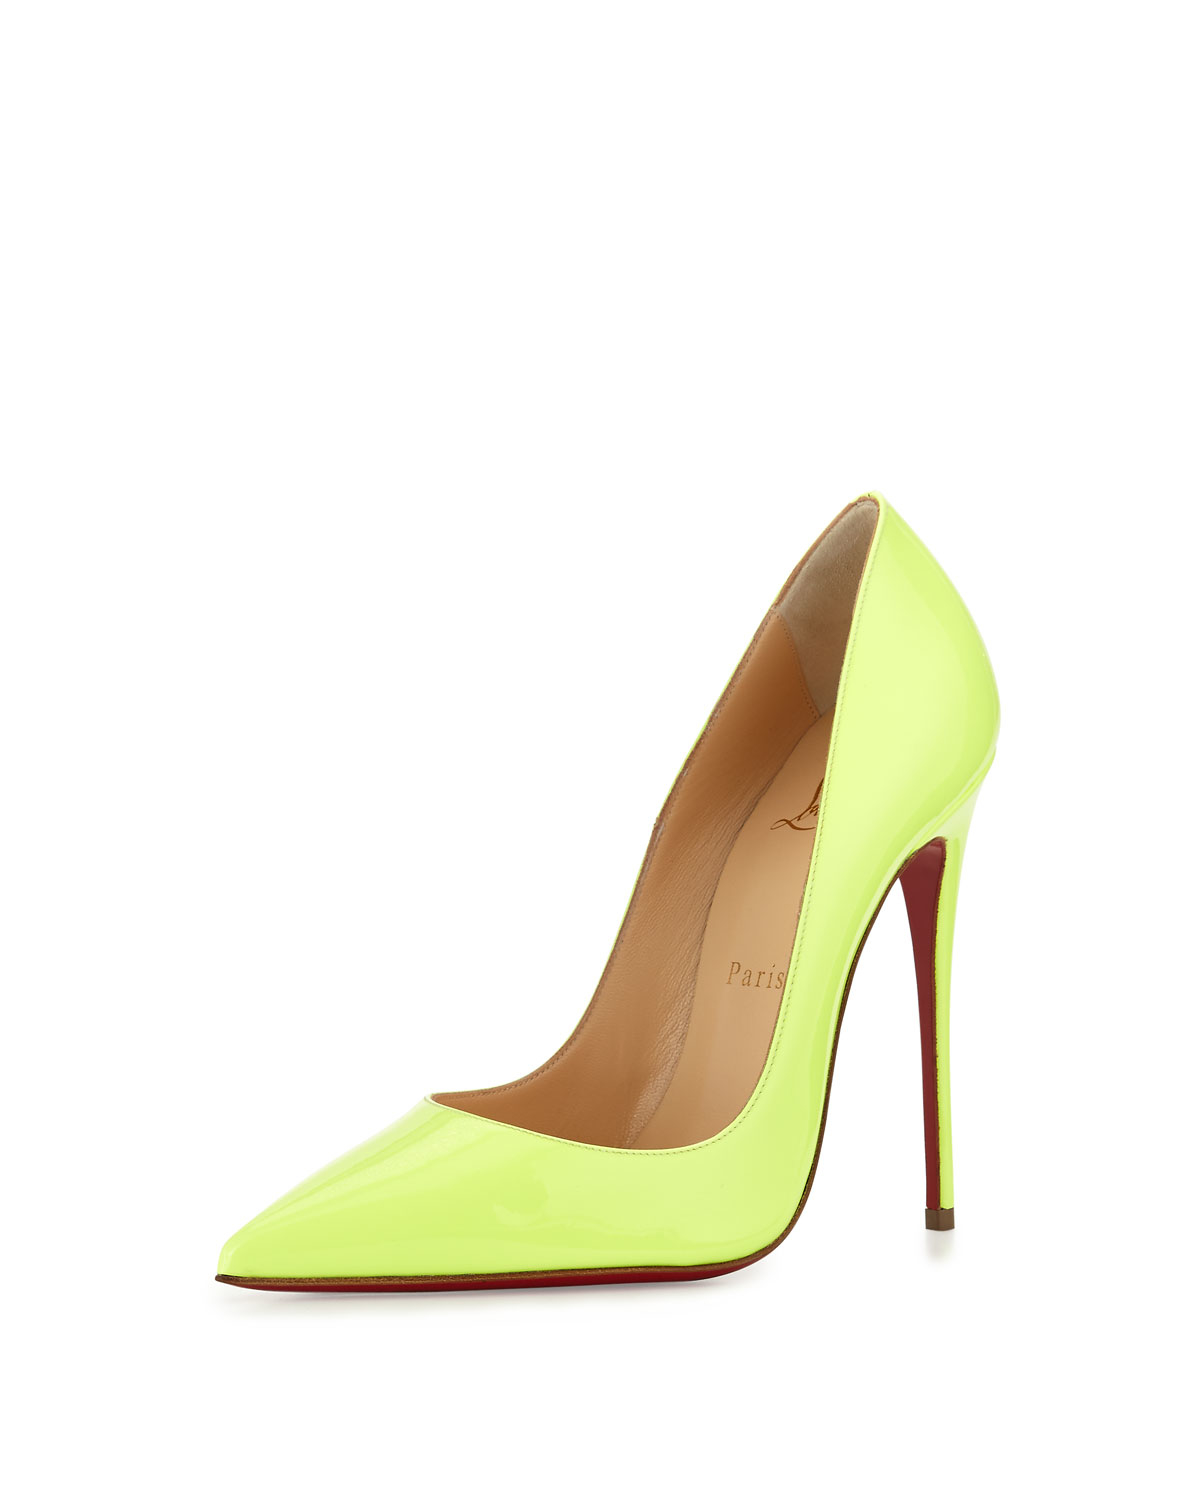 replica christian louboutin shoes - christian louboutin peep-toe slingback wedges Green patent leather ...